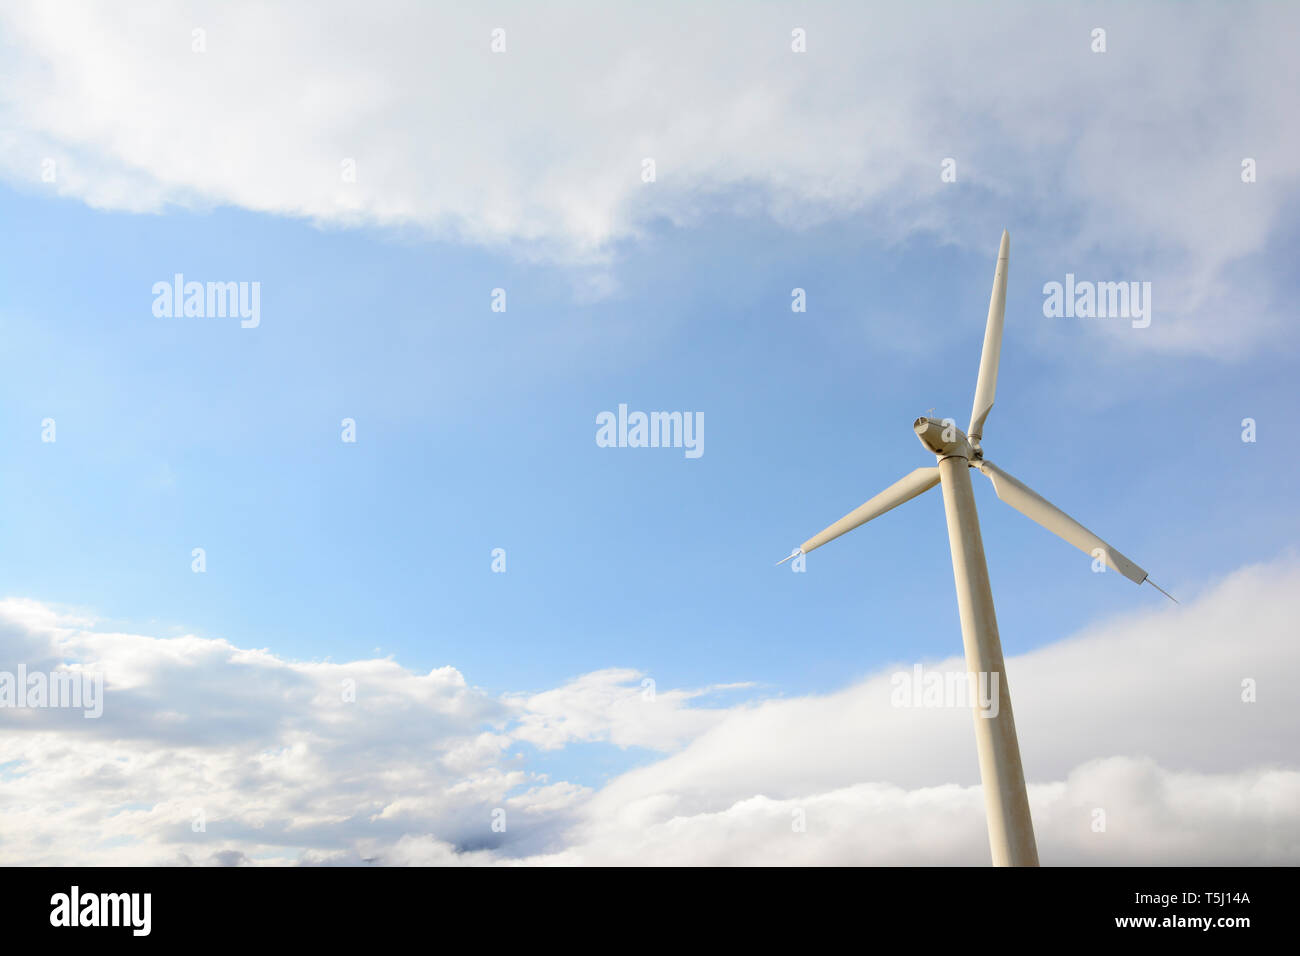 Single windmill in front of cloudy sky, environmentally friendly electricity production - Stock Image